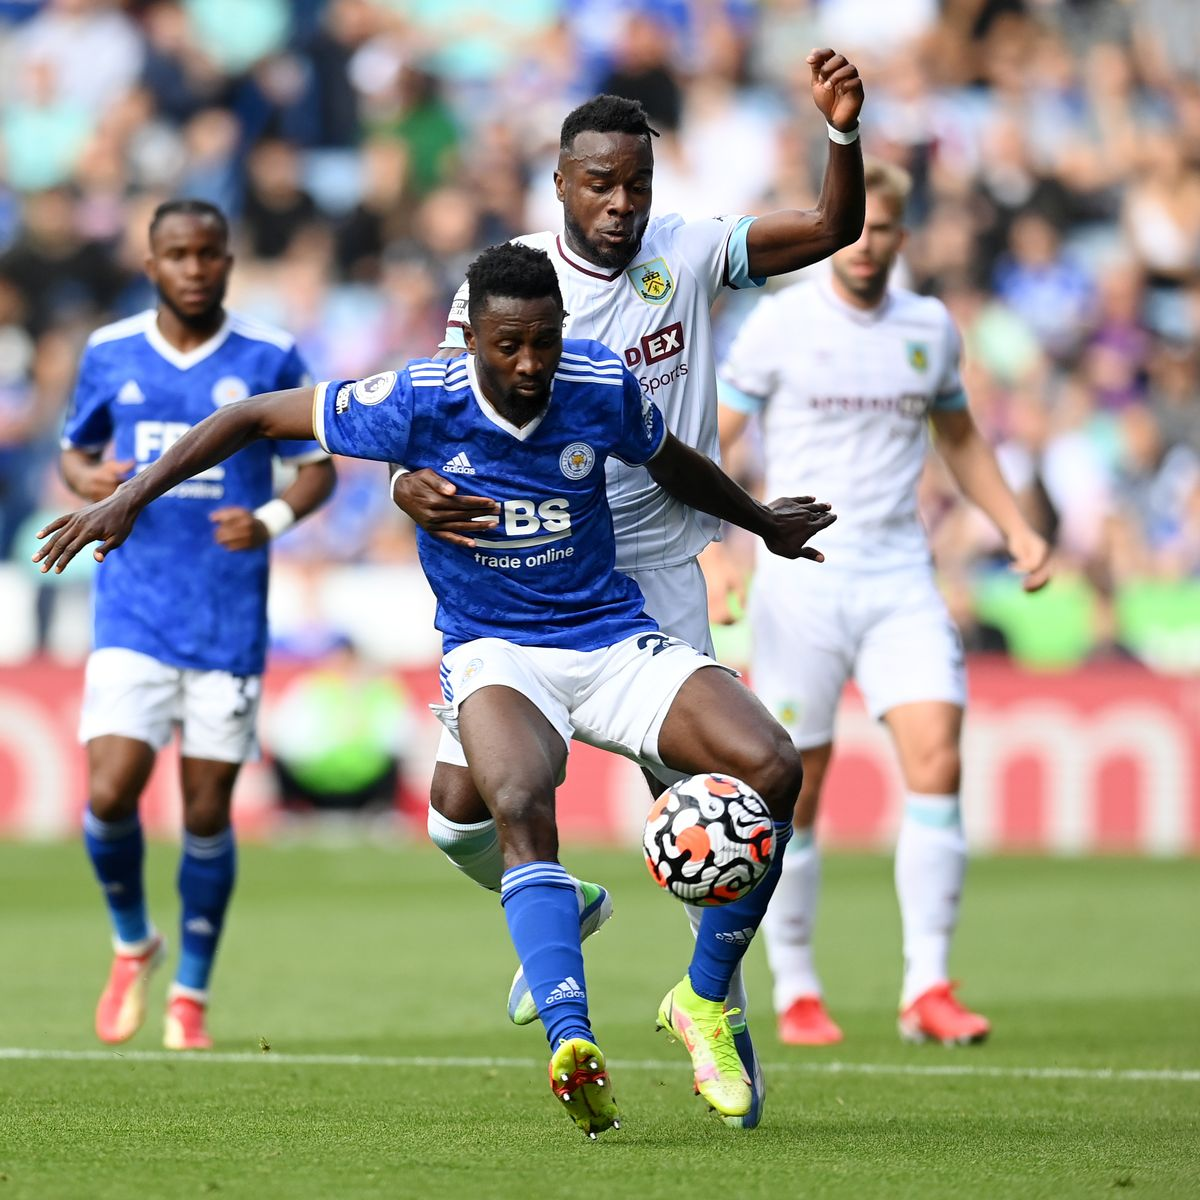 EPL: Iheanacho Provides Assist, Ndidi In Action As Leicester – Burnley Draw; Iwobi Helps Everton Beat Norwich